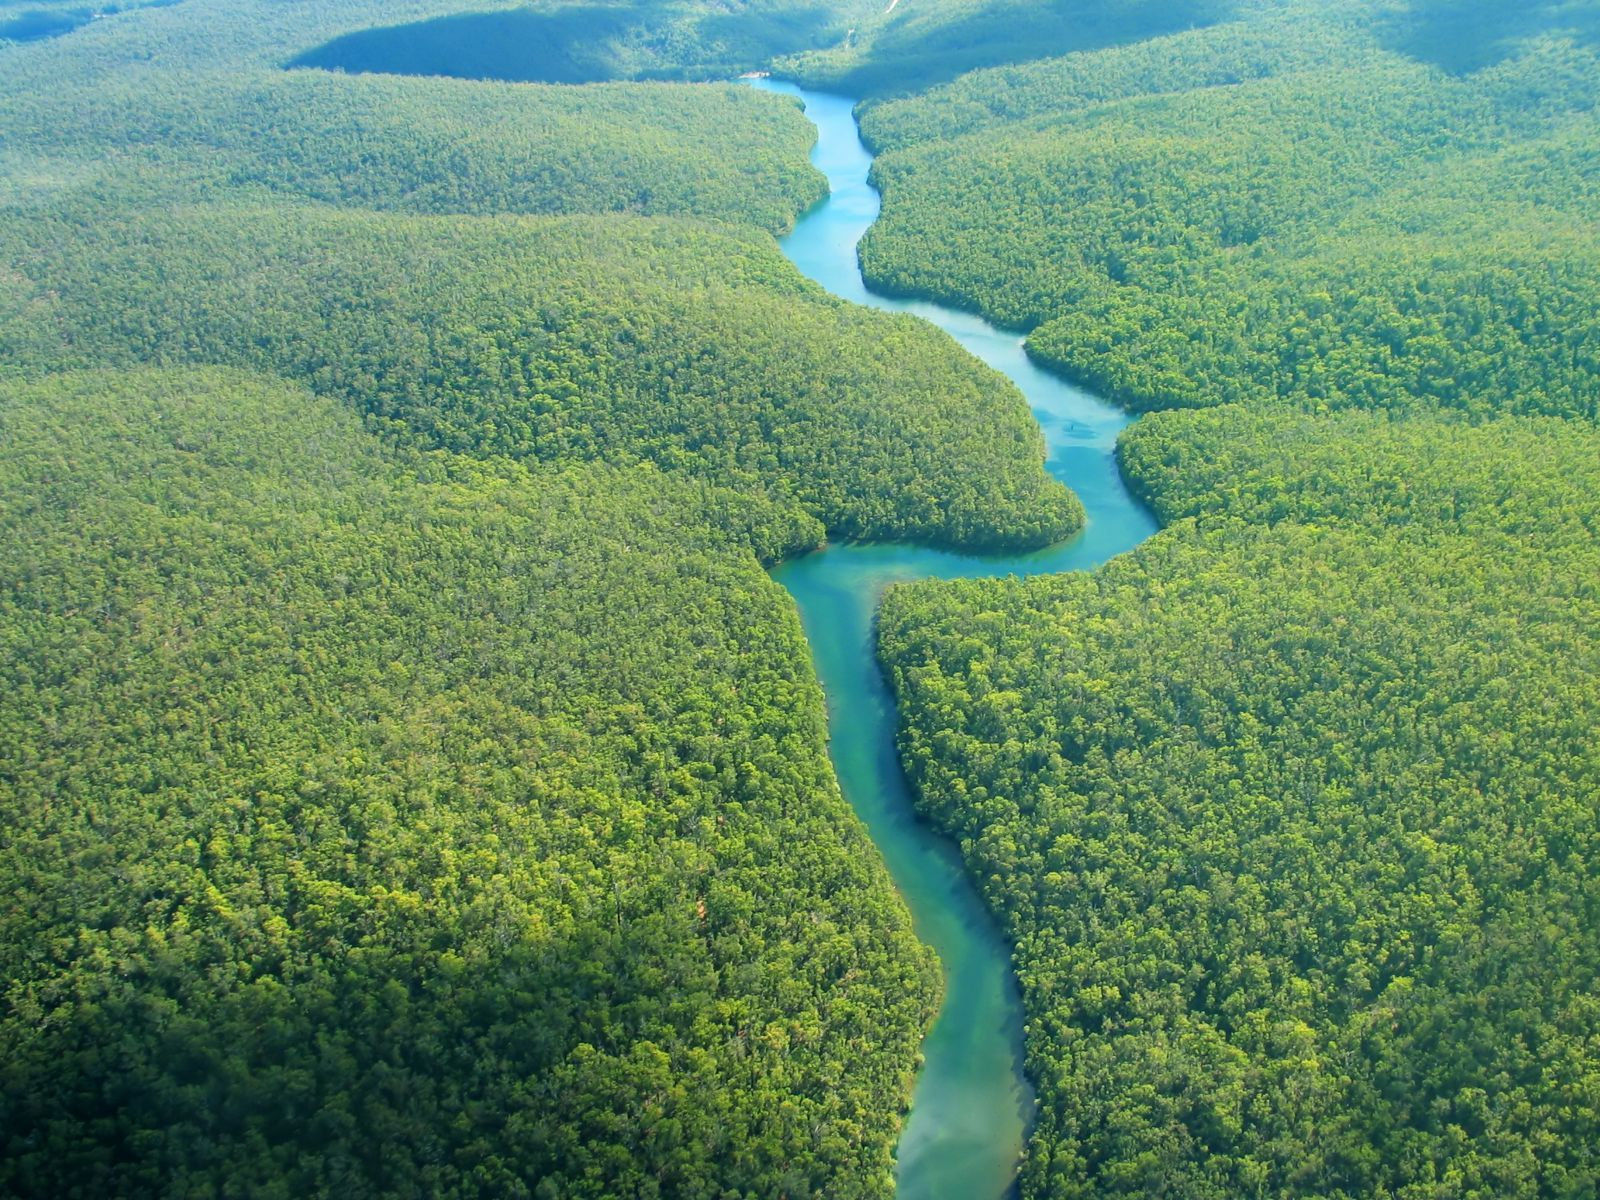 The Amazon River Of South America Comes Next At A Length Of - Rivers around the world